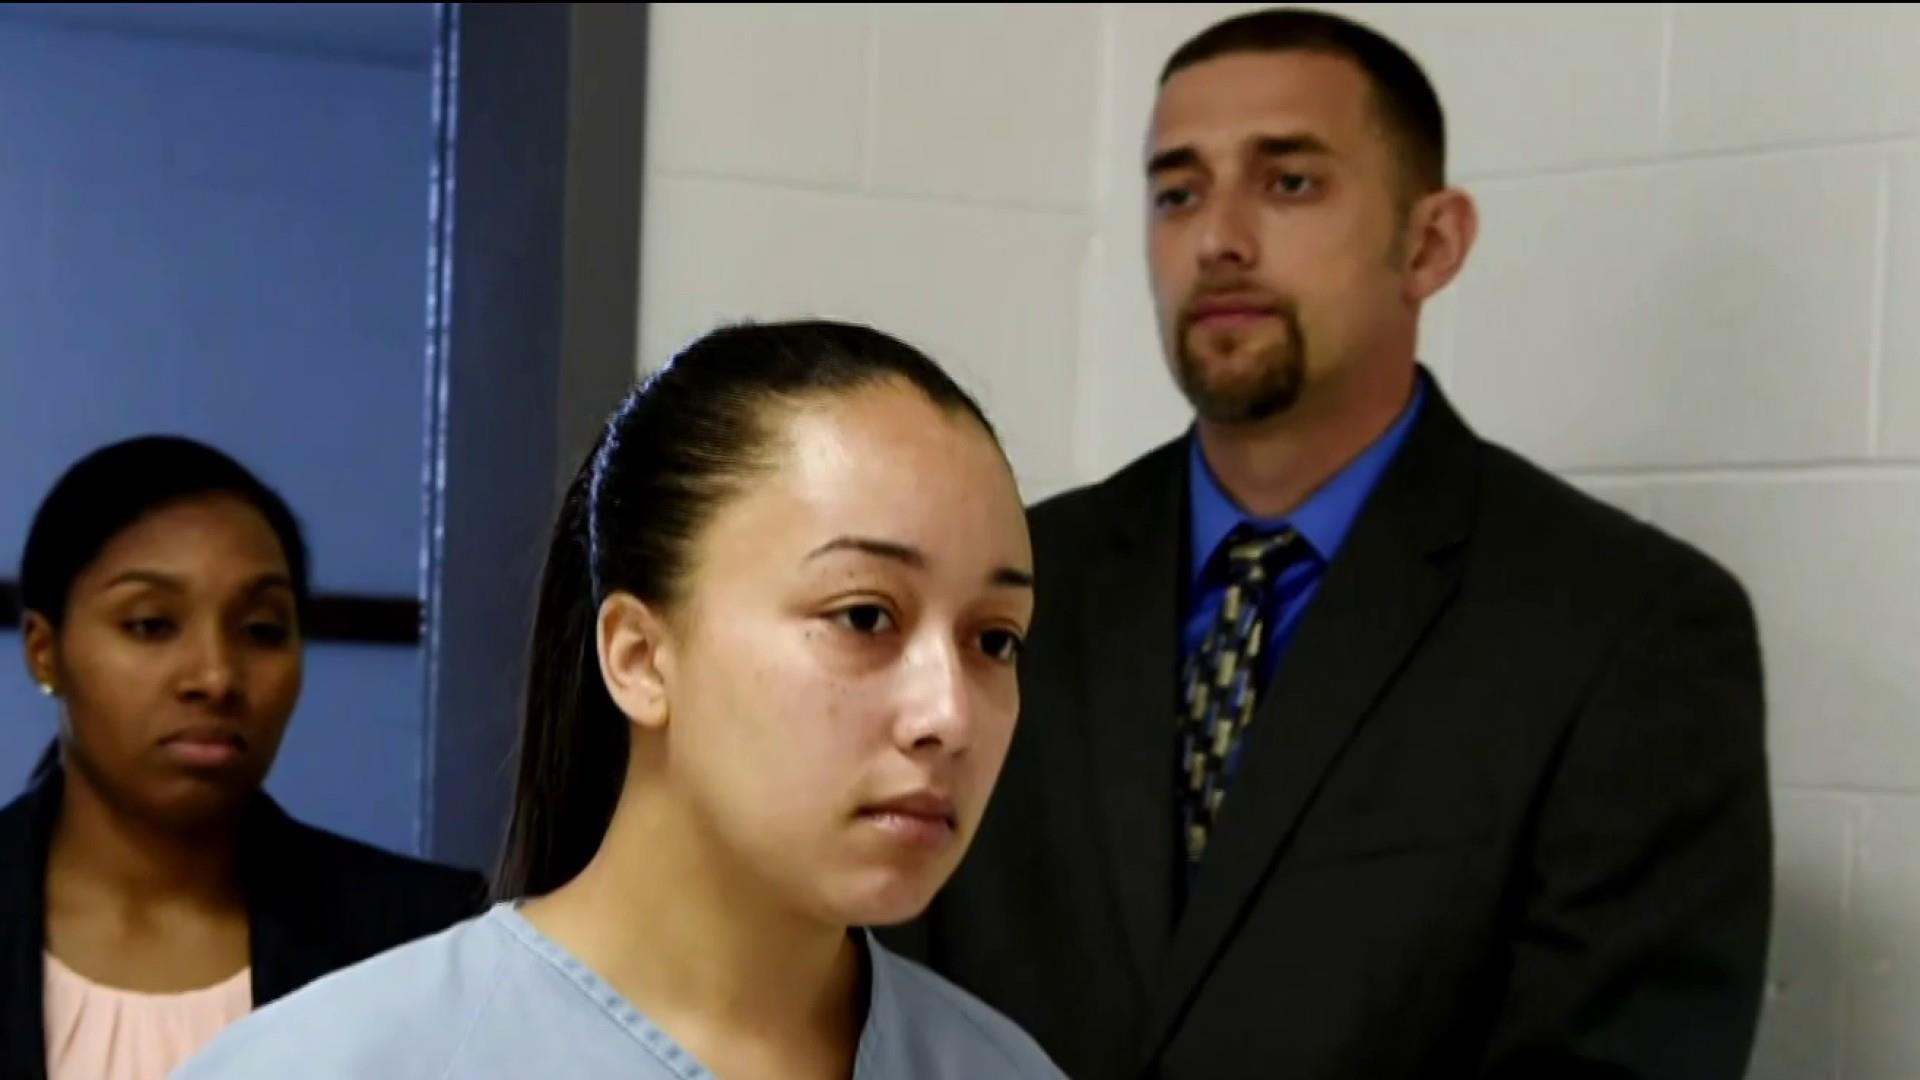 Cyntoia Brown on her release from prison: 'I am loving every single thing'